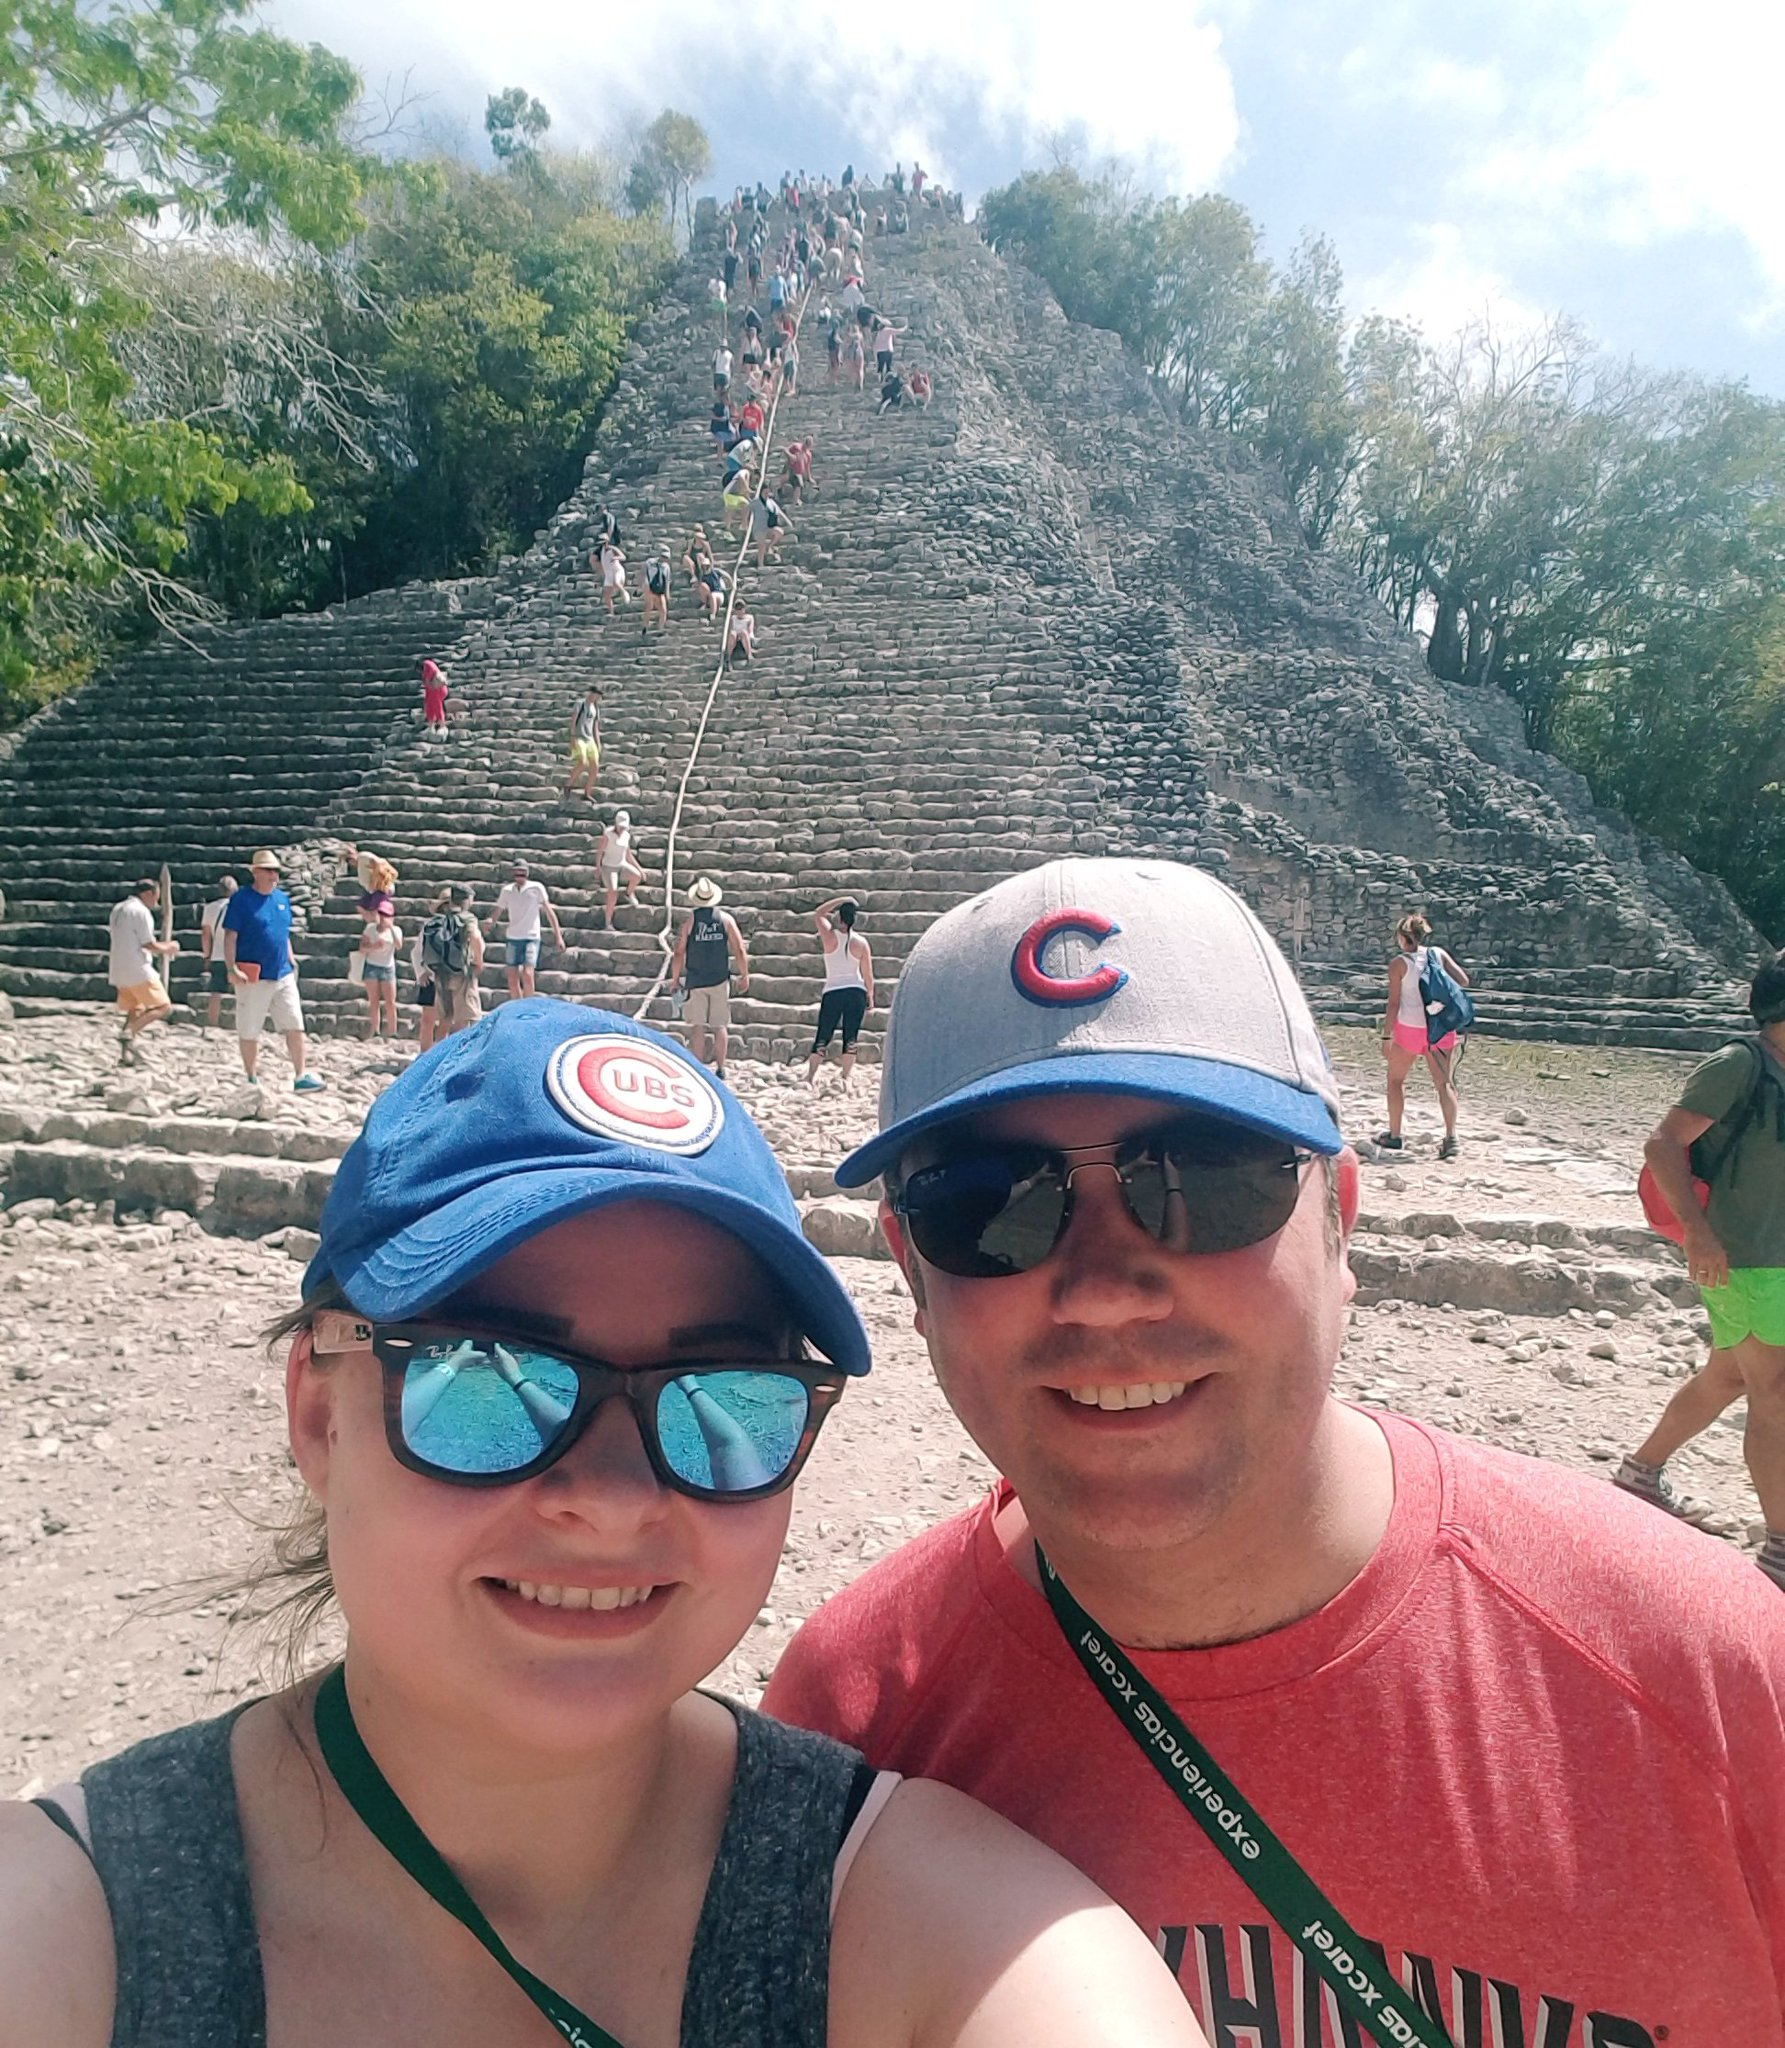 We repped the @Cubs all the way in Cobá, Mexico! https://t.co/QpS0Xi0ij3